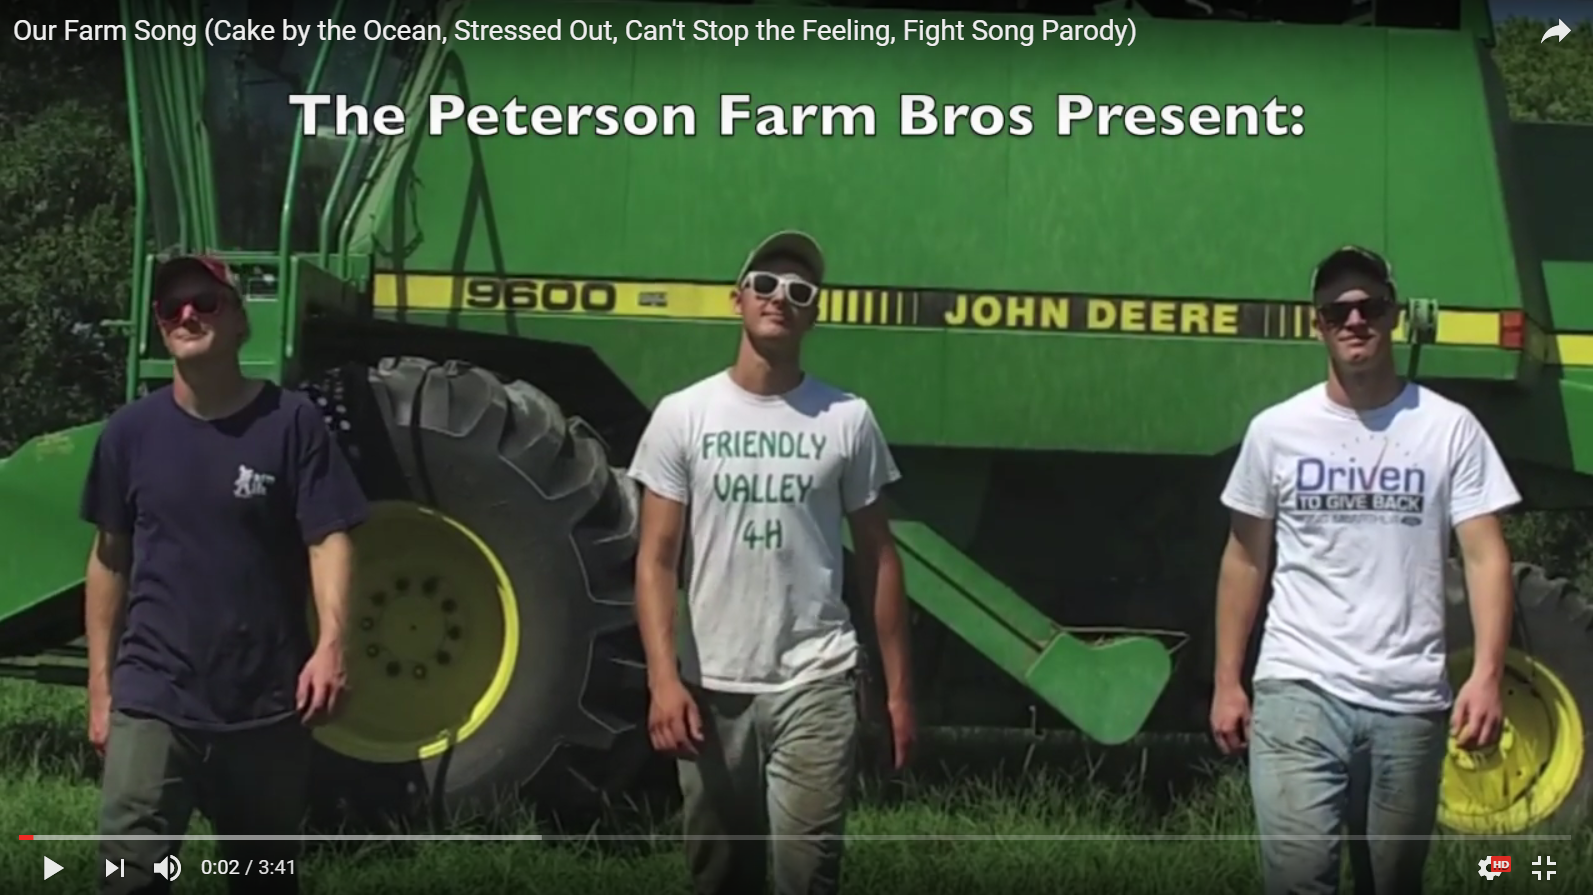 petersons farm song